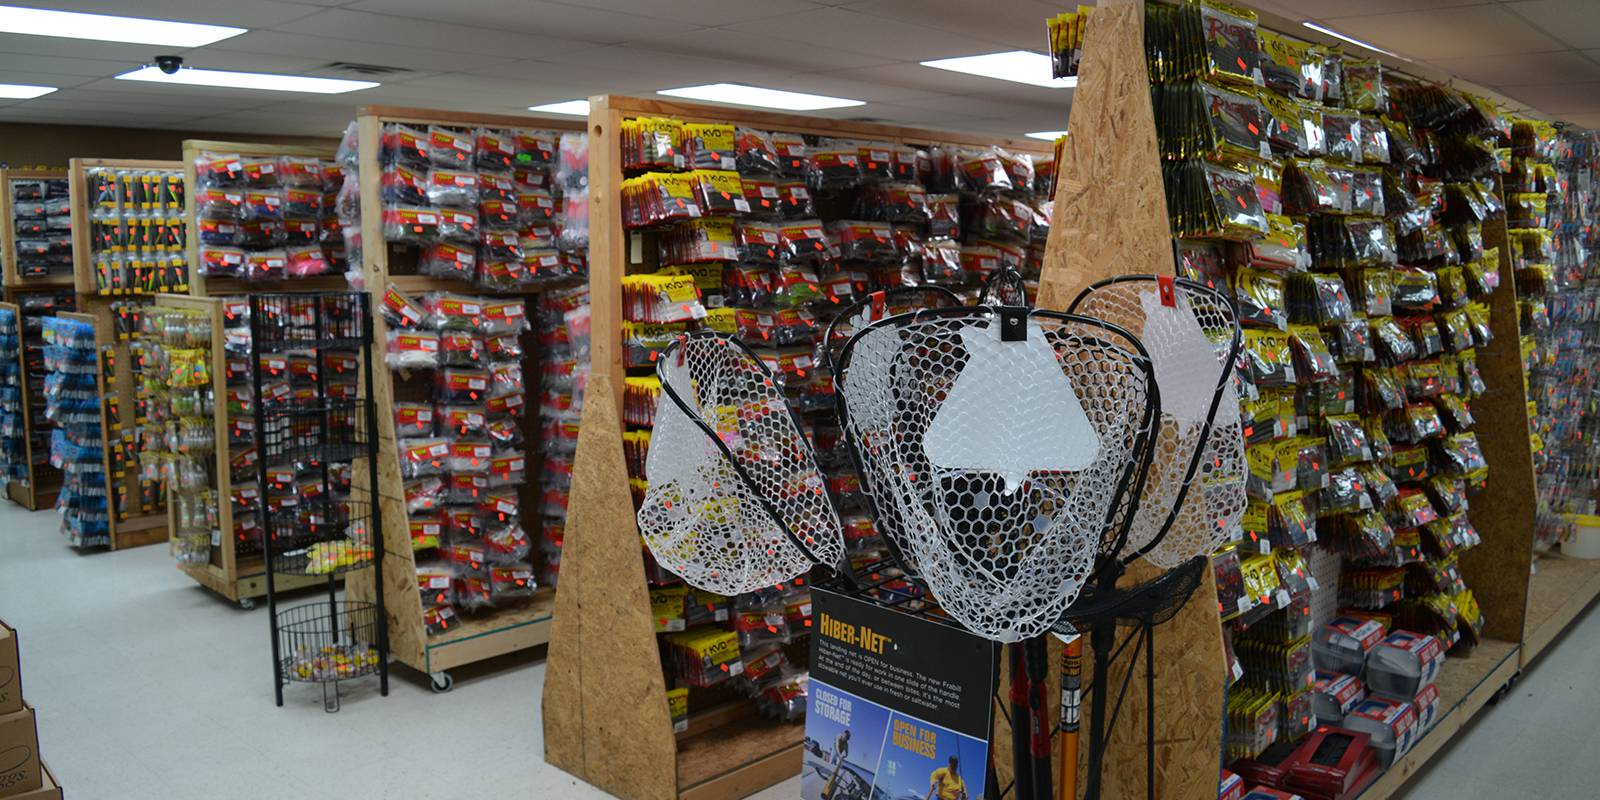 Largest Fishing Supplier in the Area. Rods, Reels, Lures, Assorted Gear, Etc.